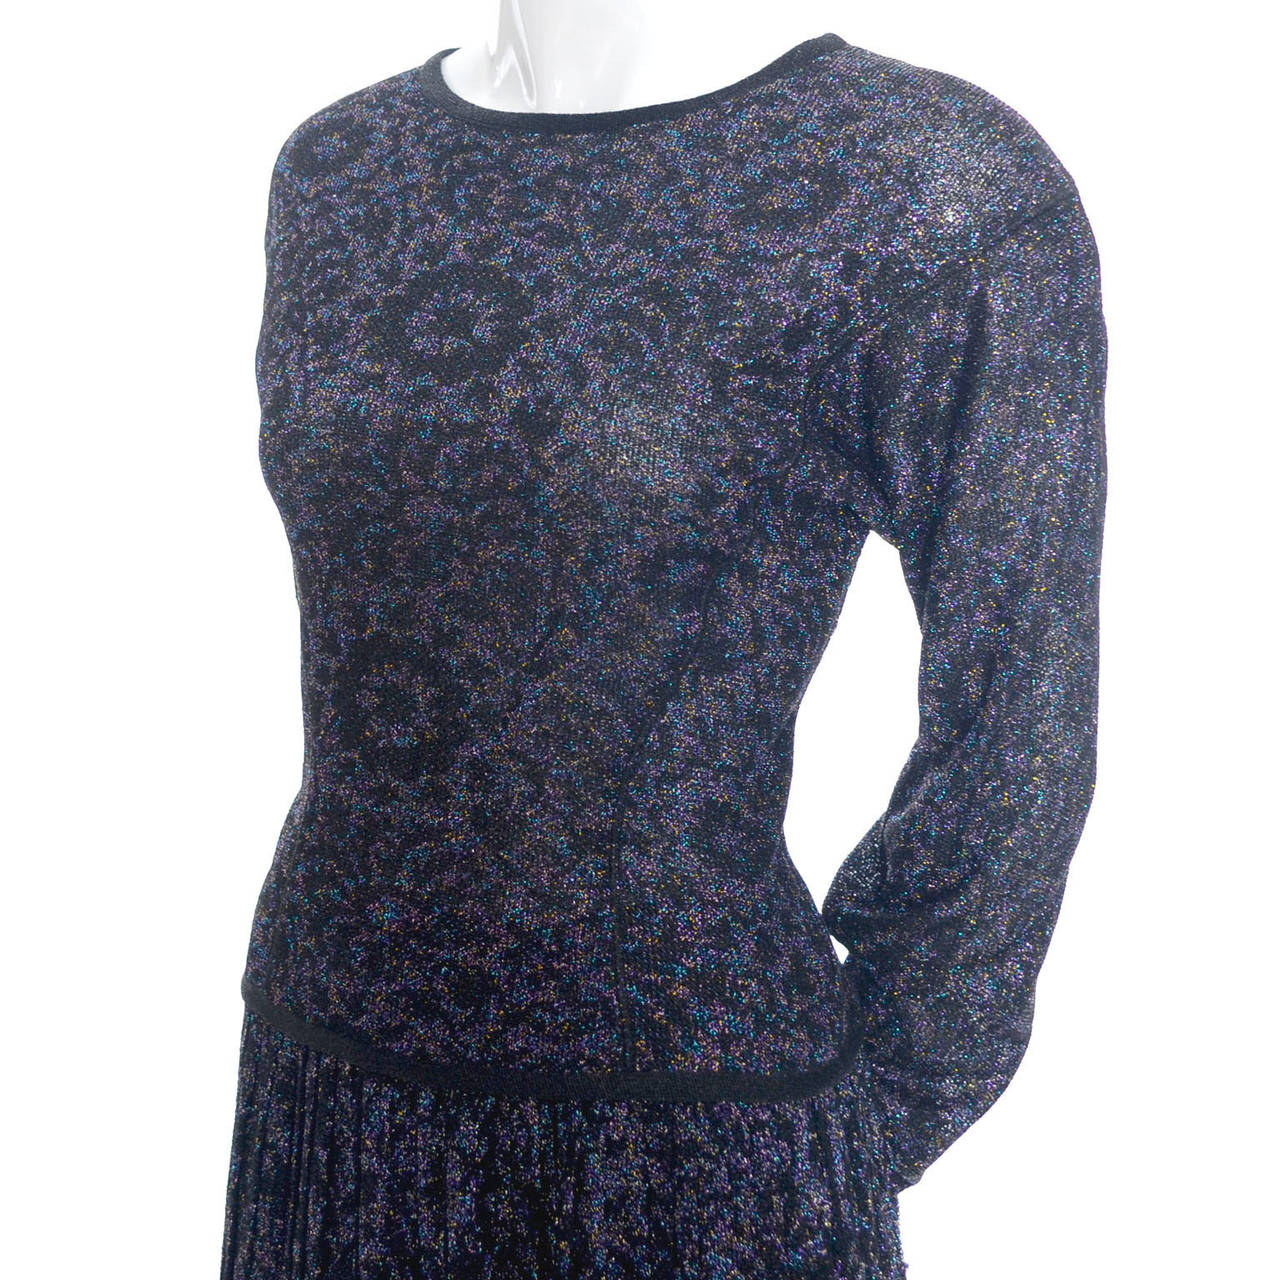 Missoni Metallic Sparkle Vintage Skirt Top Evening Outfit Saks Fifth Avenue In Good Condition For Sale In Portland, OR